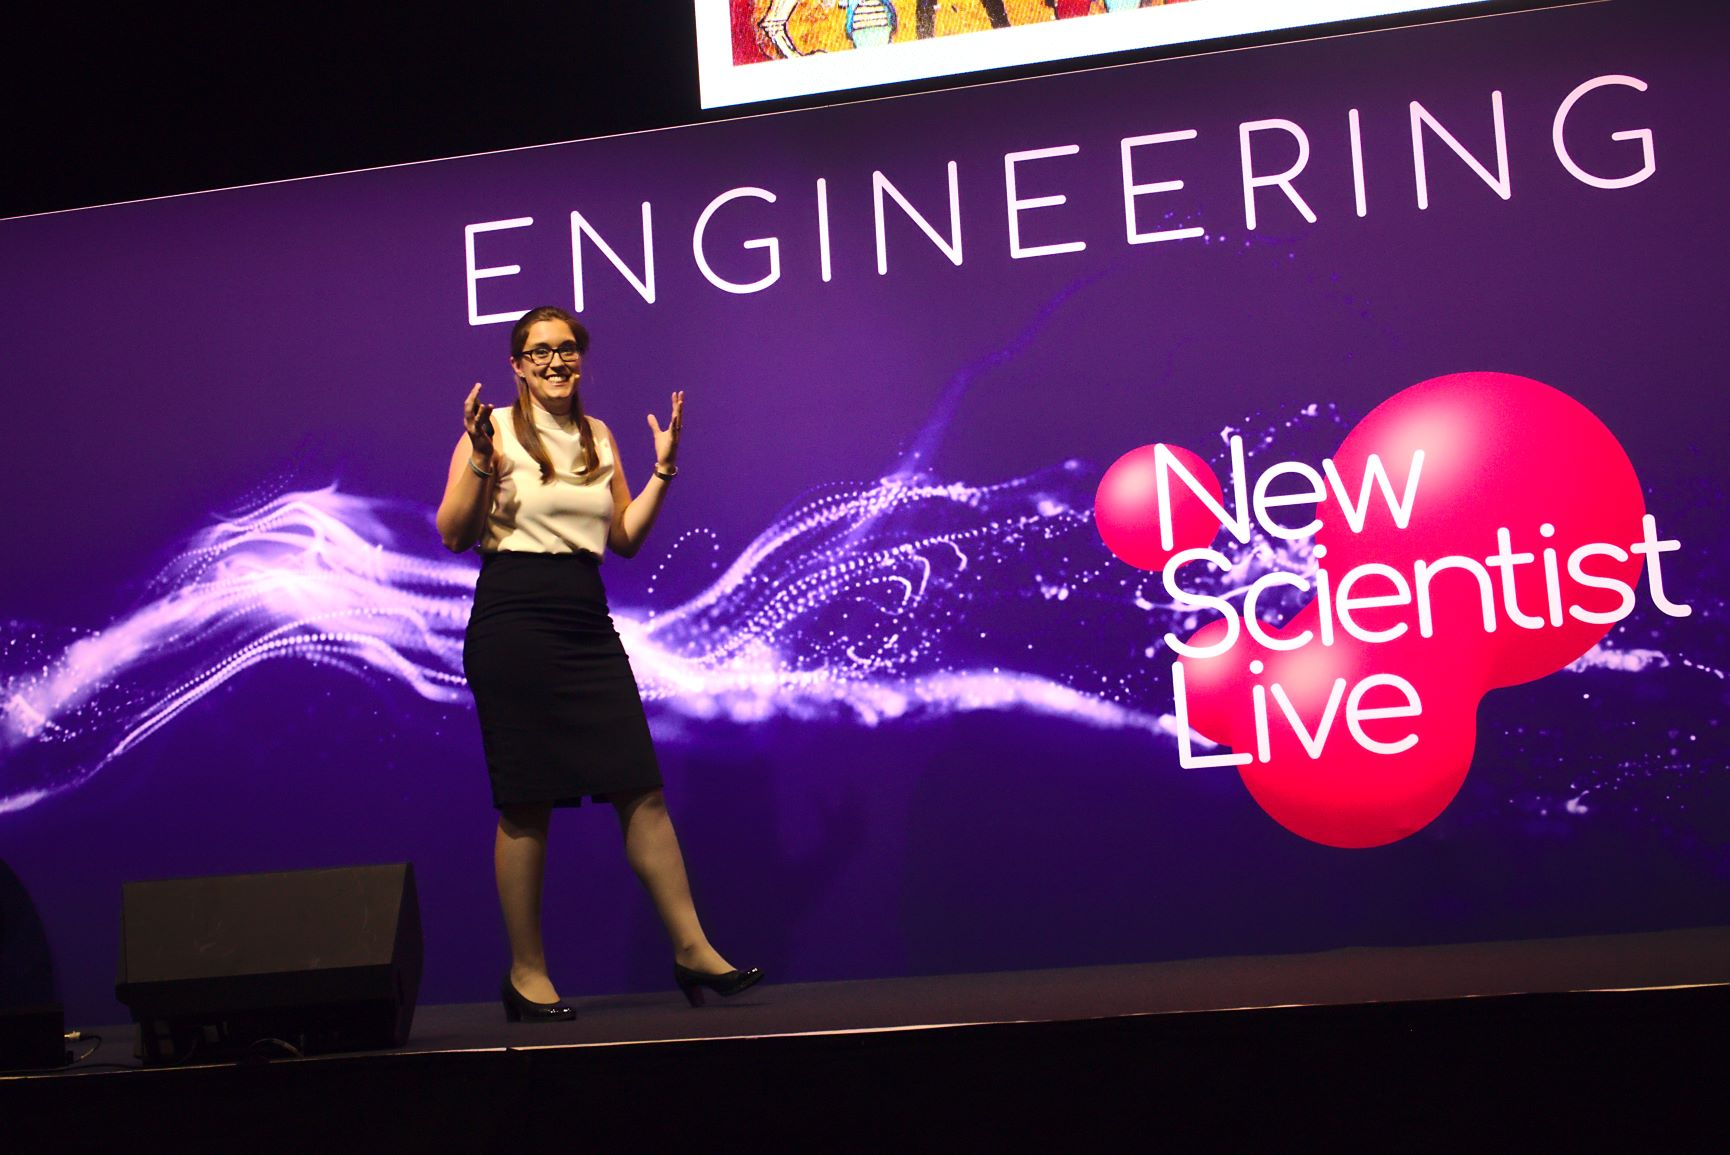 Healing with Bespoke Biomaterials talk at the 2018 New Scientist Live Festival, Engineering Stage.